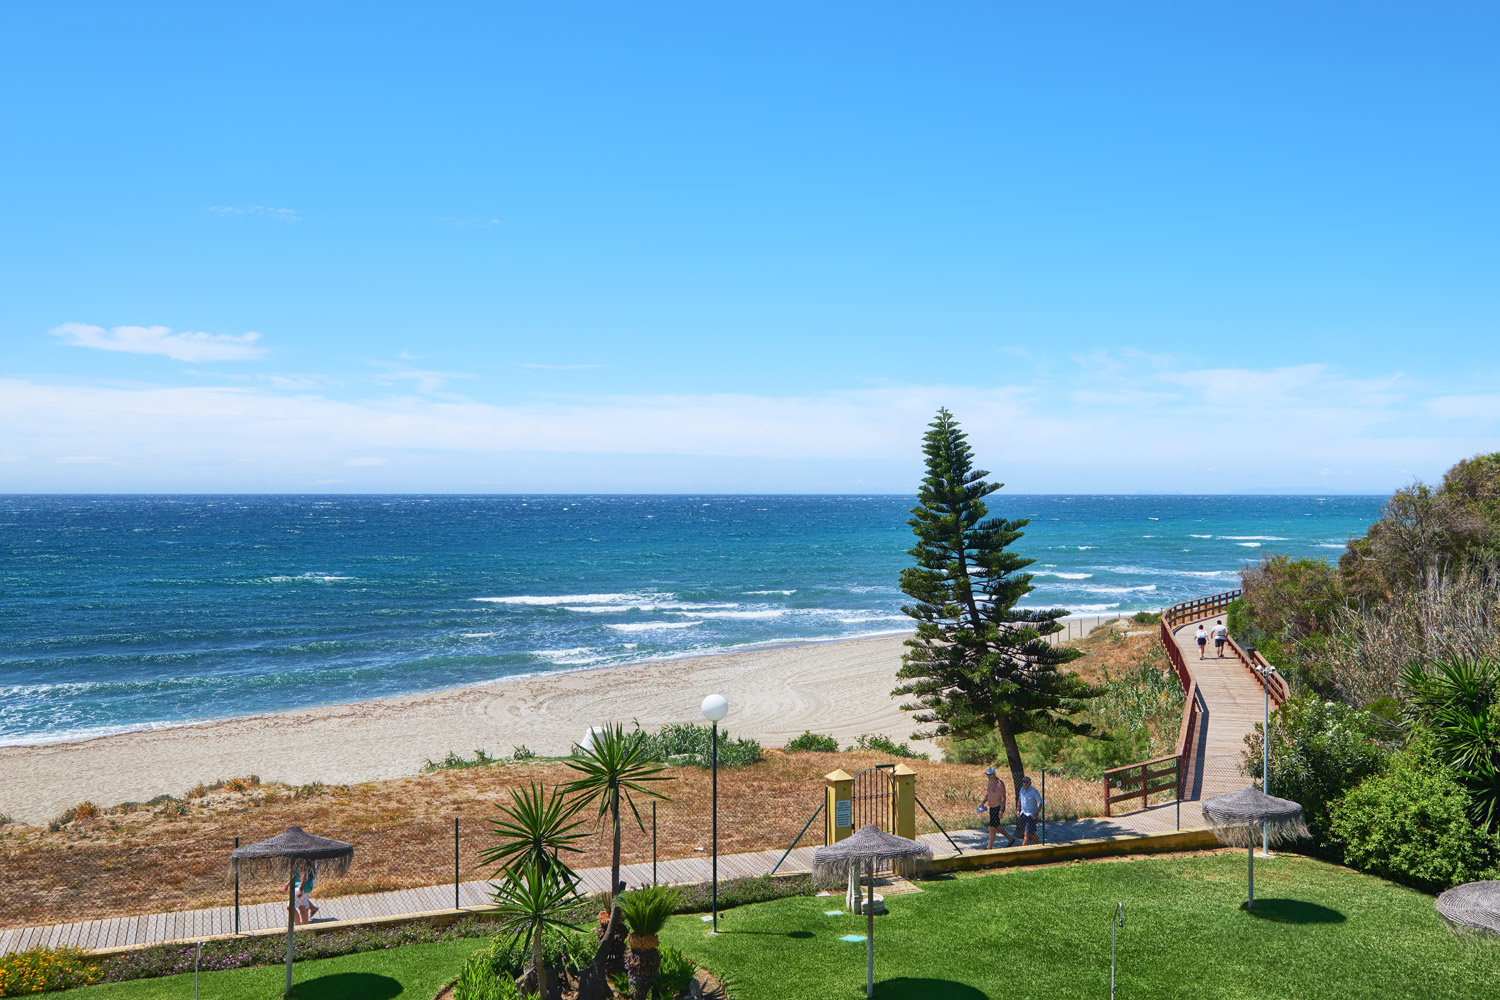 Greenlife-estates-frontline-penthouse-marbella-east-sea